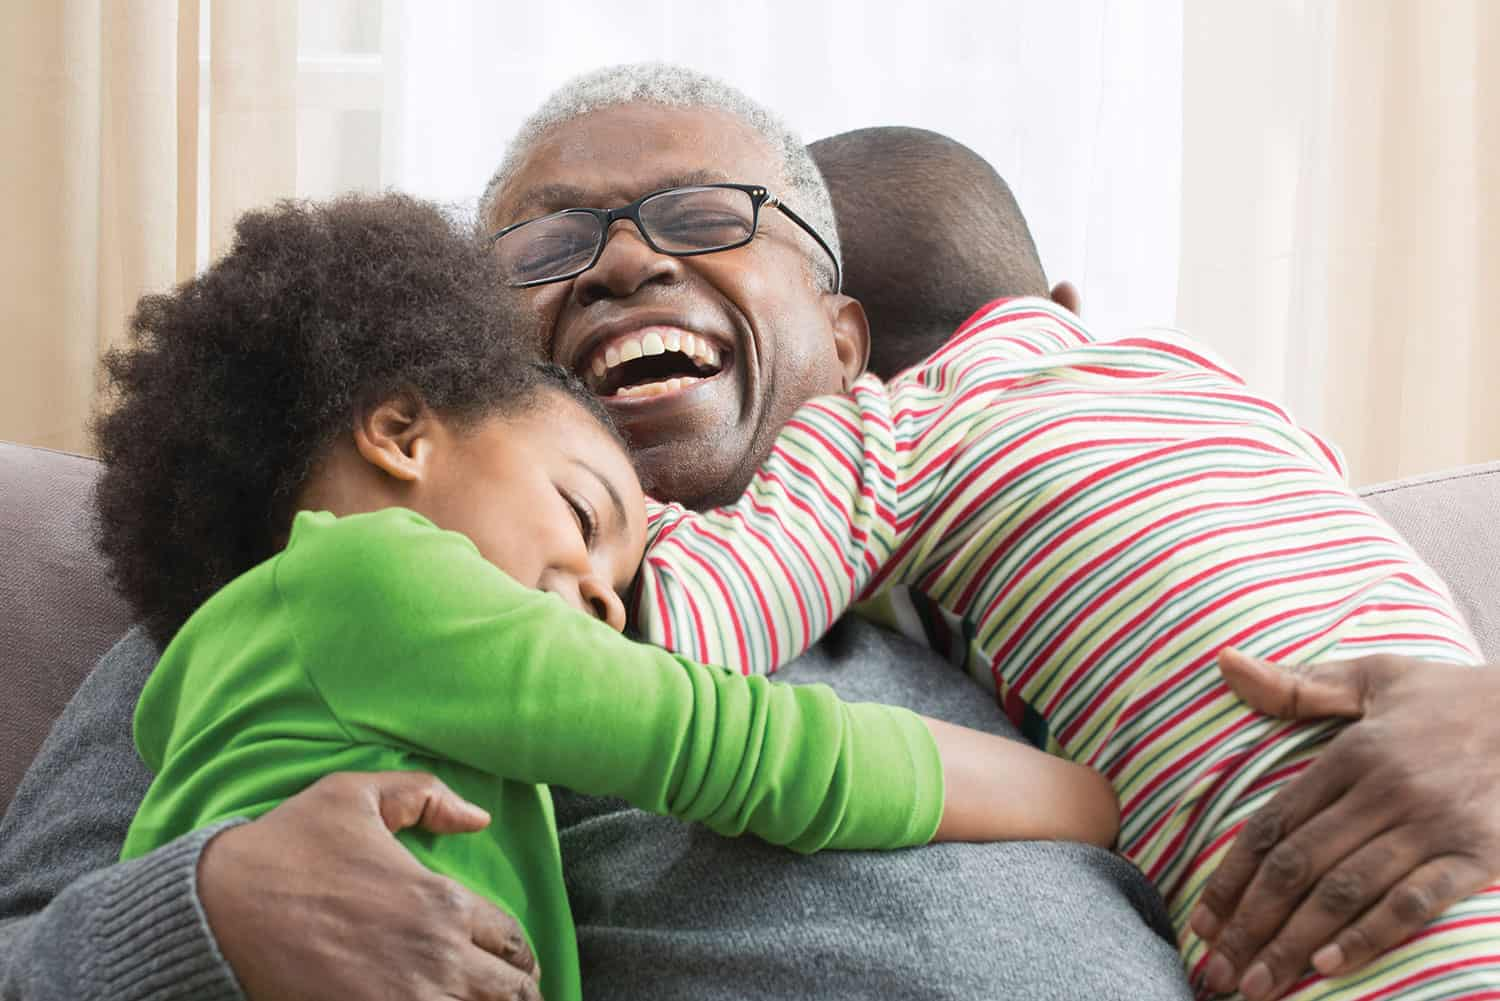 Grandfather Embracing Young Grandchildren on Couch and Laughing